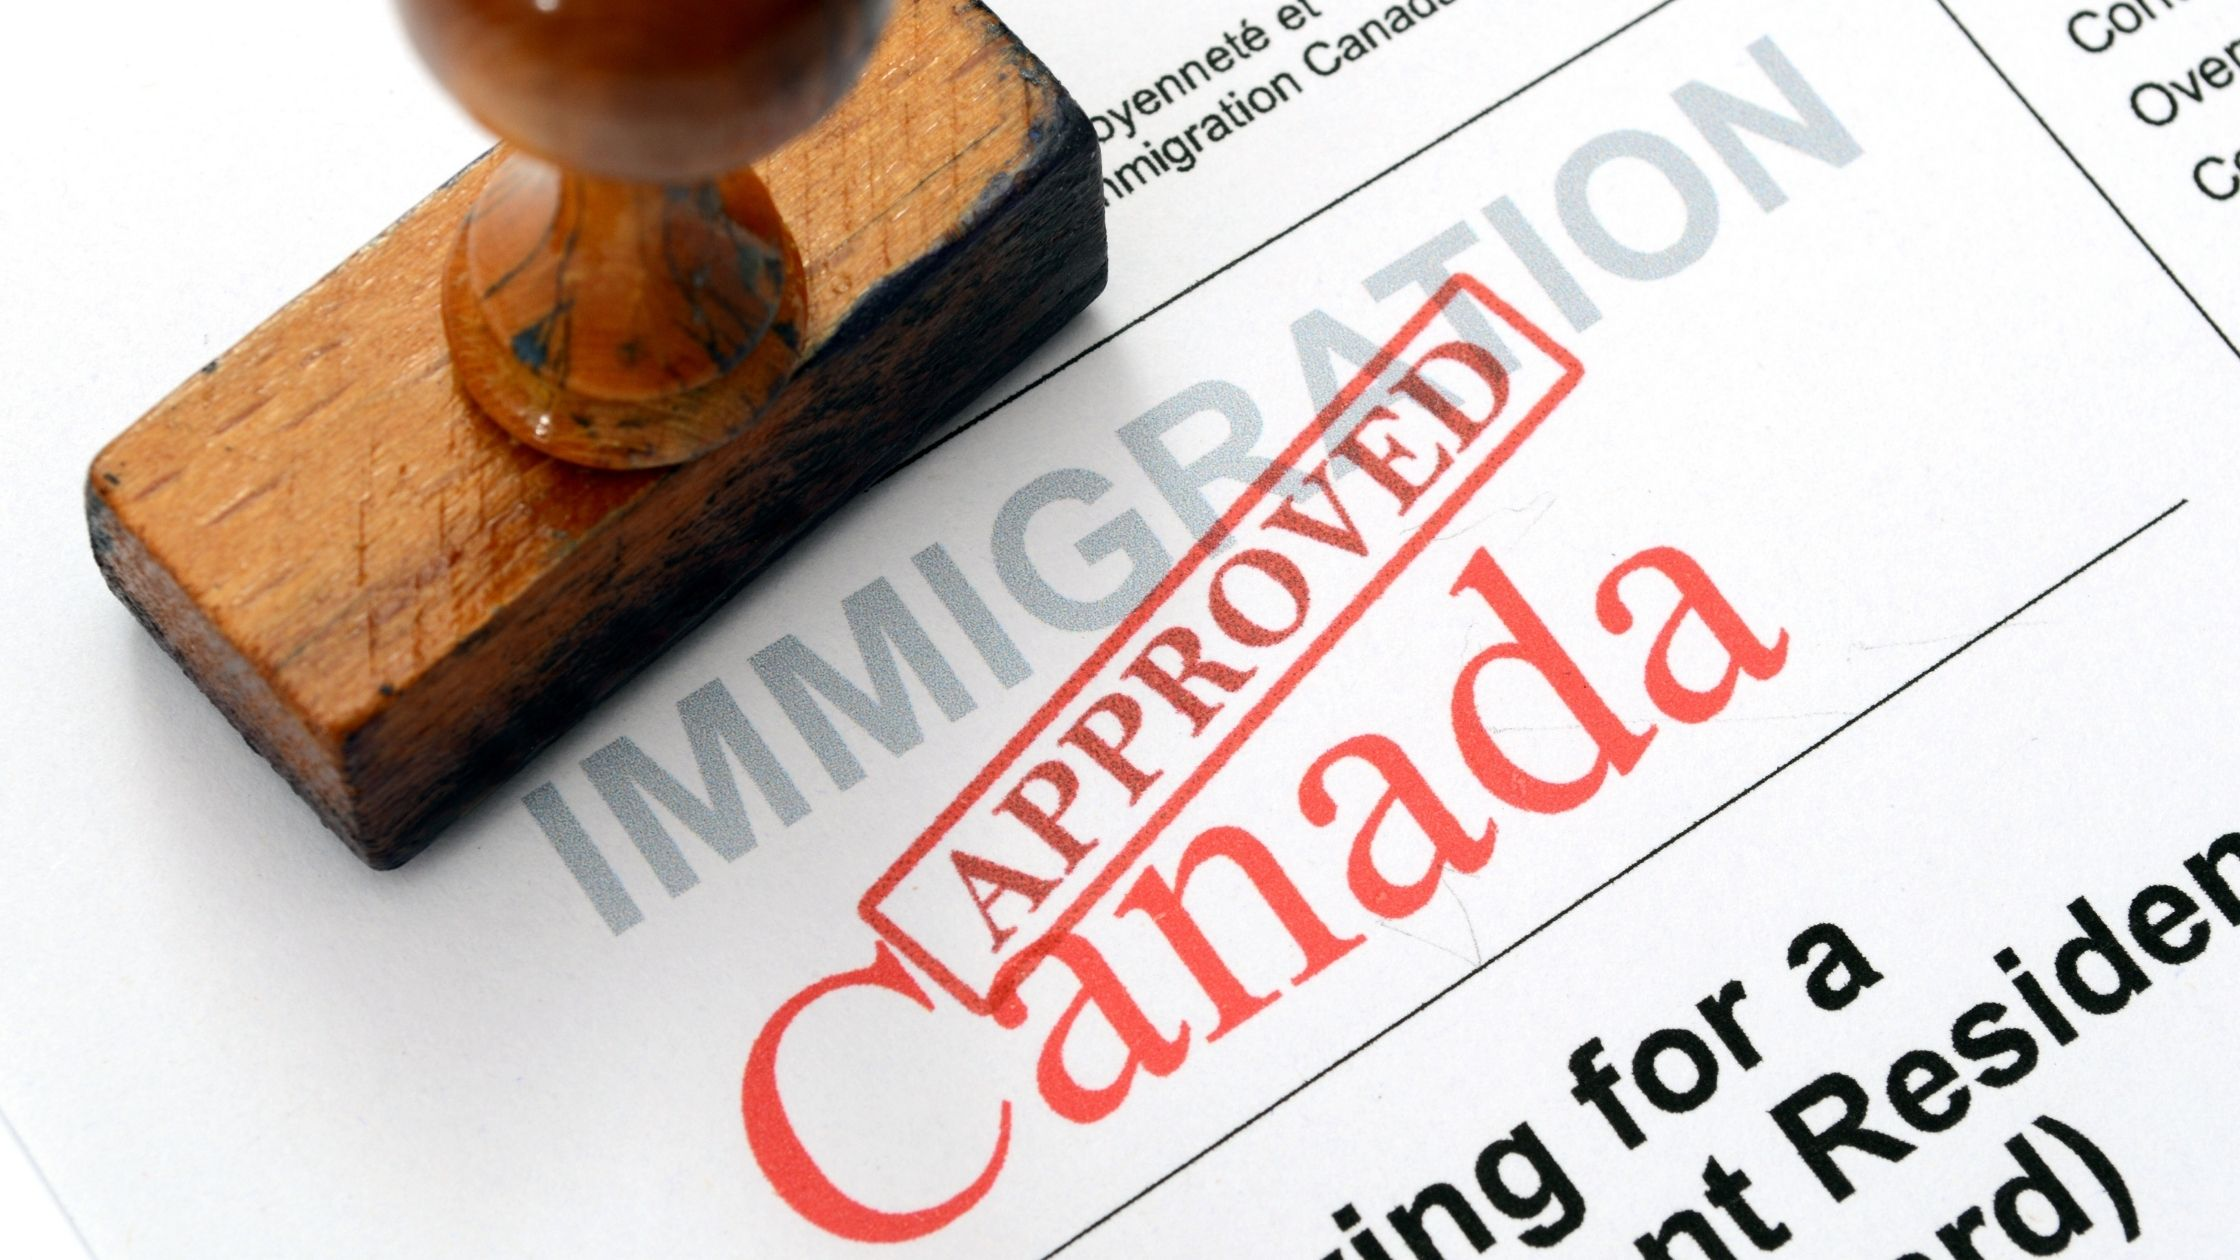 Migrate To Canada